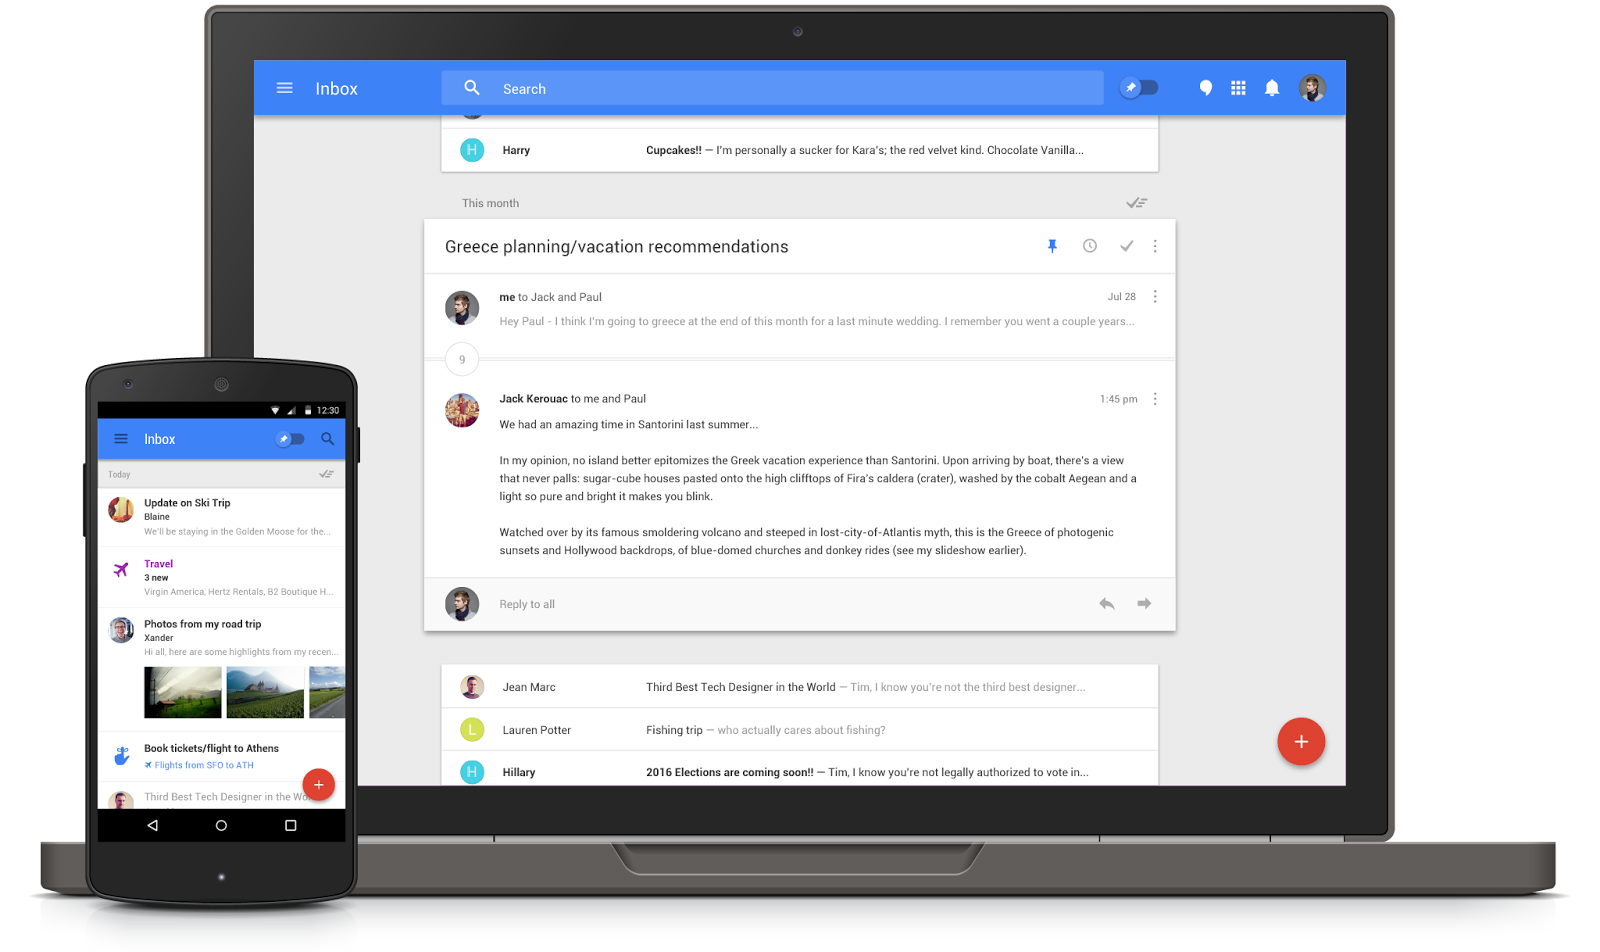 Inbox by Gmail to be discontinued in March 2019